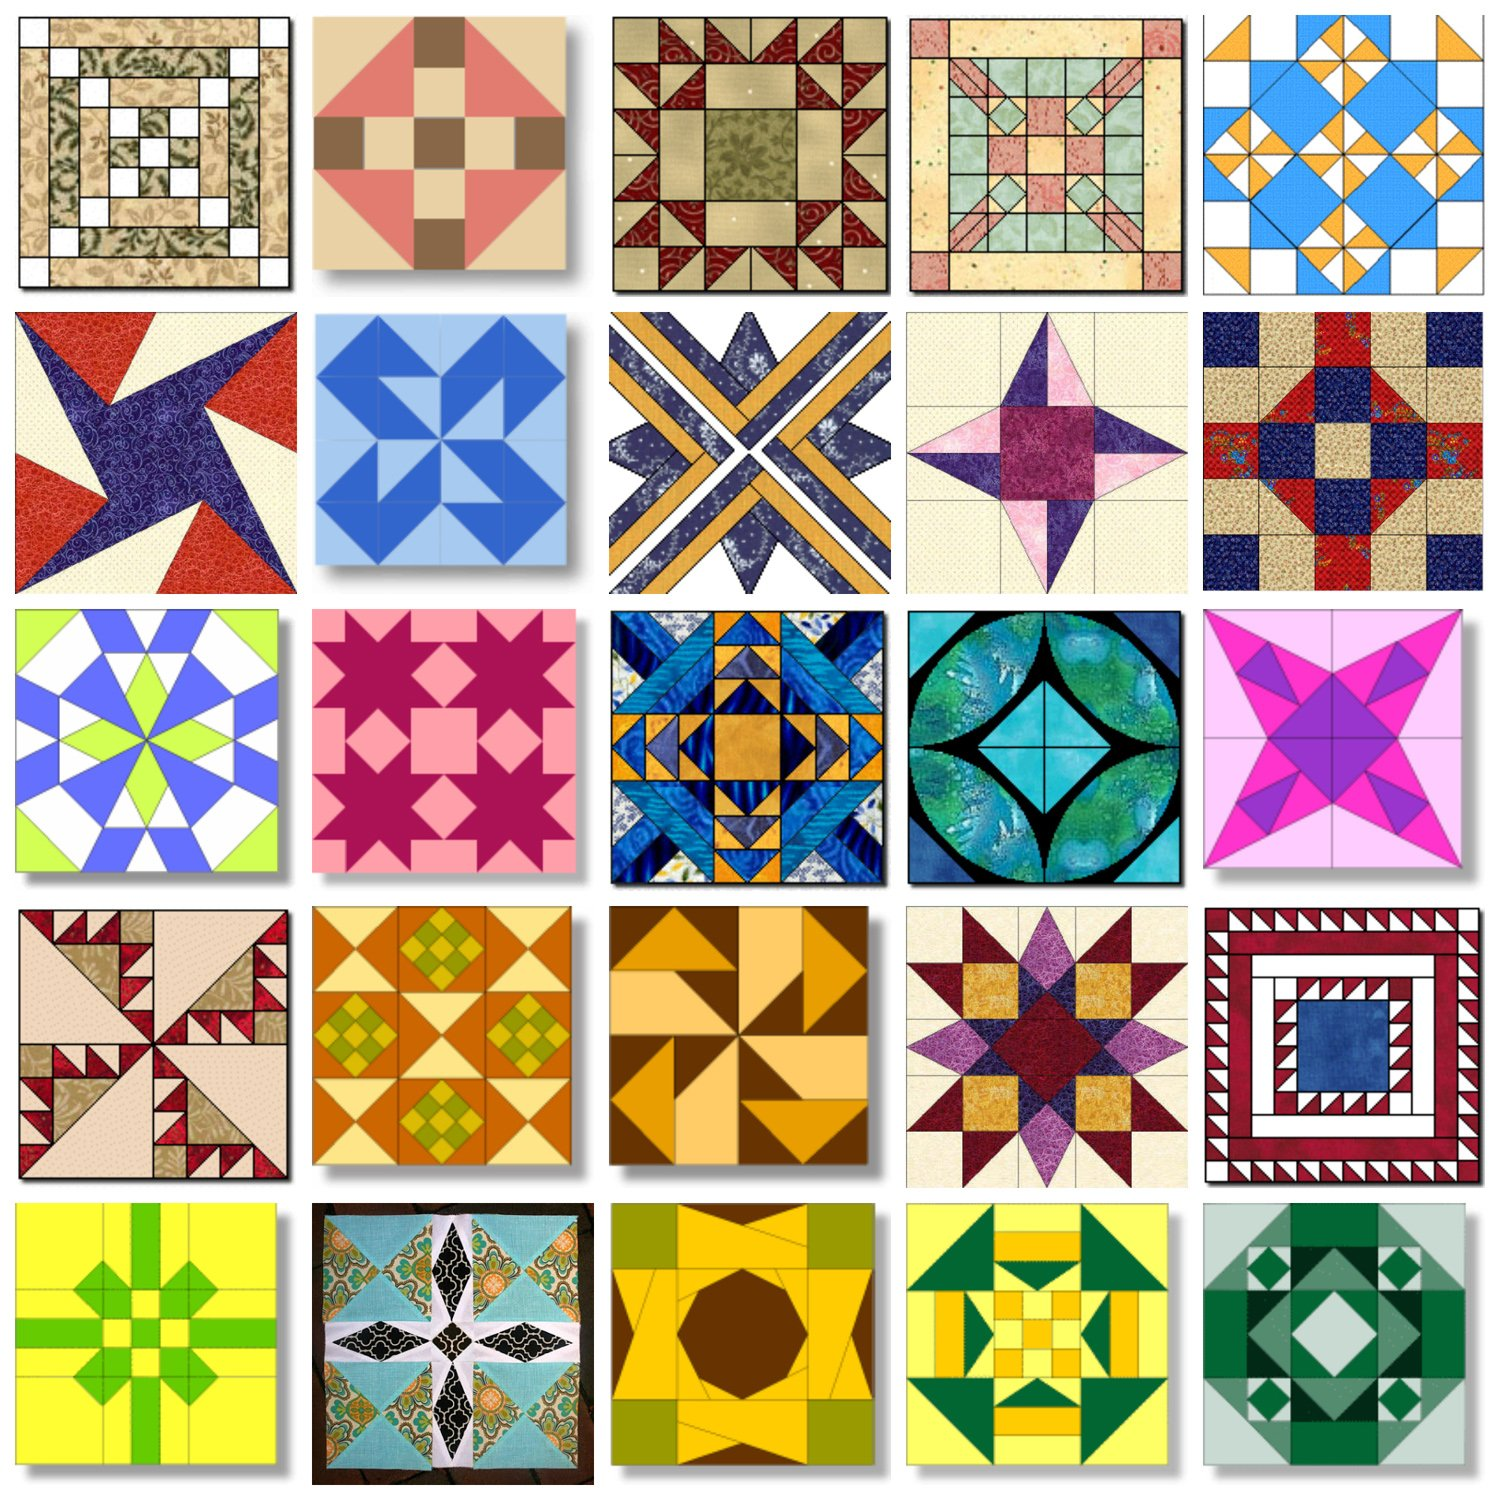 photo relating to Free Printable Hawaiian Quilt Patterns named 50 Region Quilt Block Types - Fairfield Environment Web site